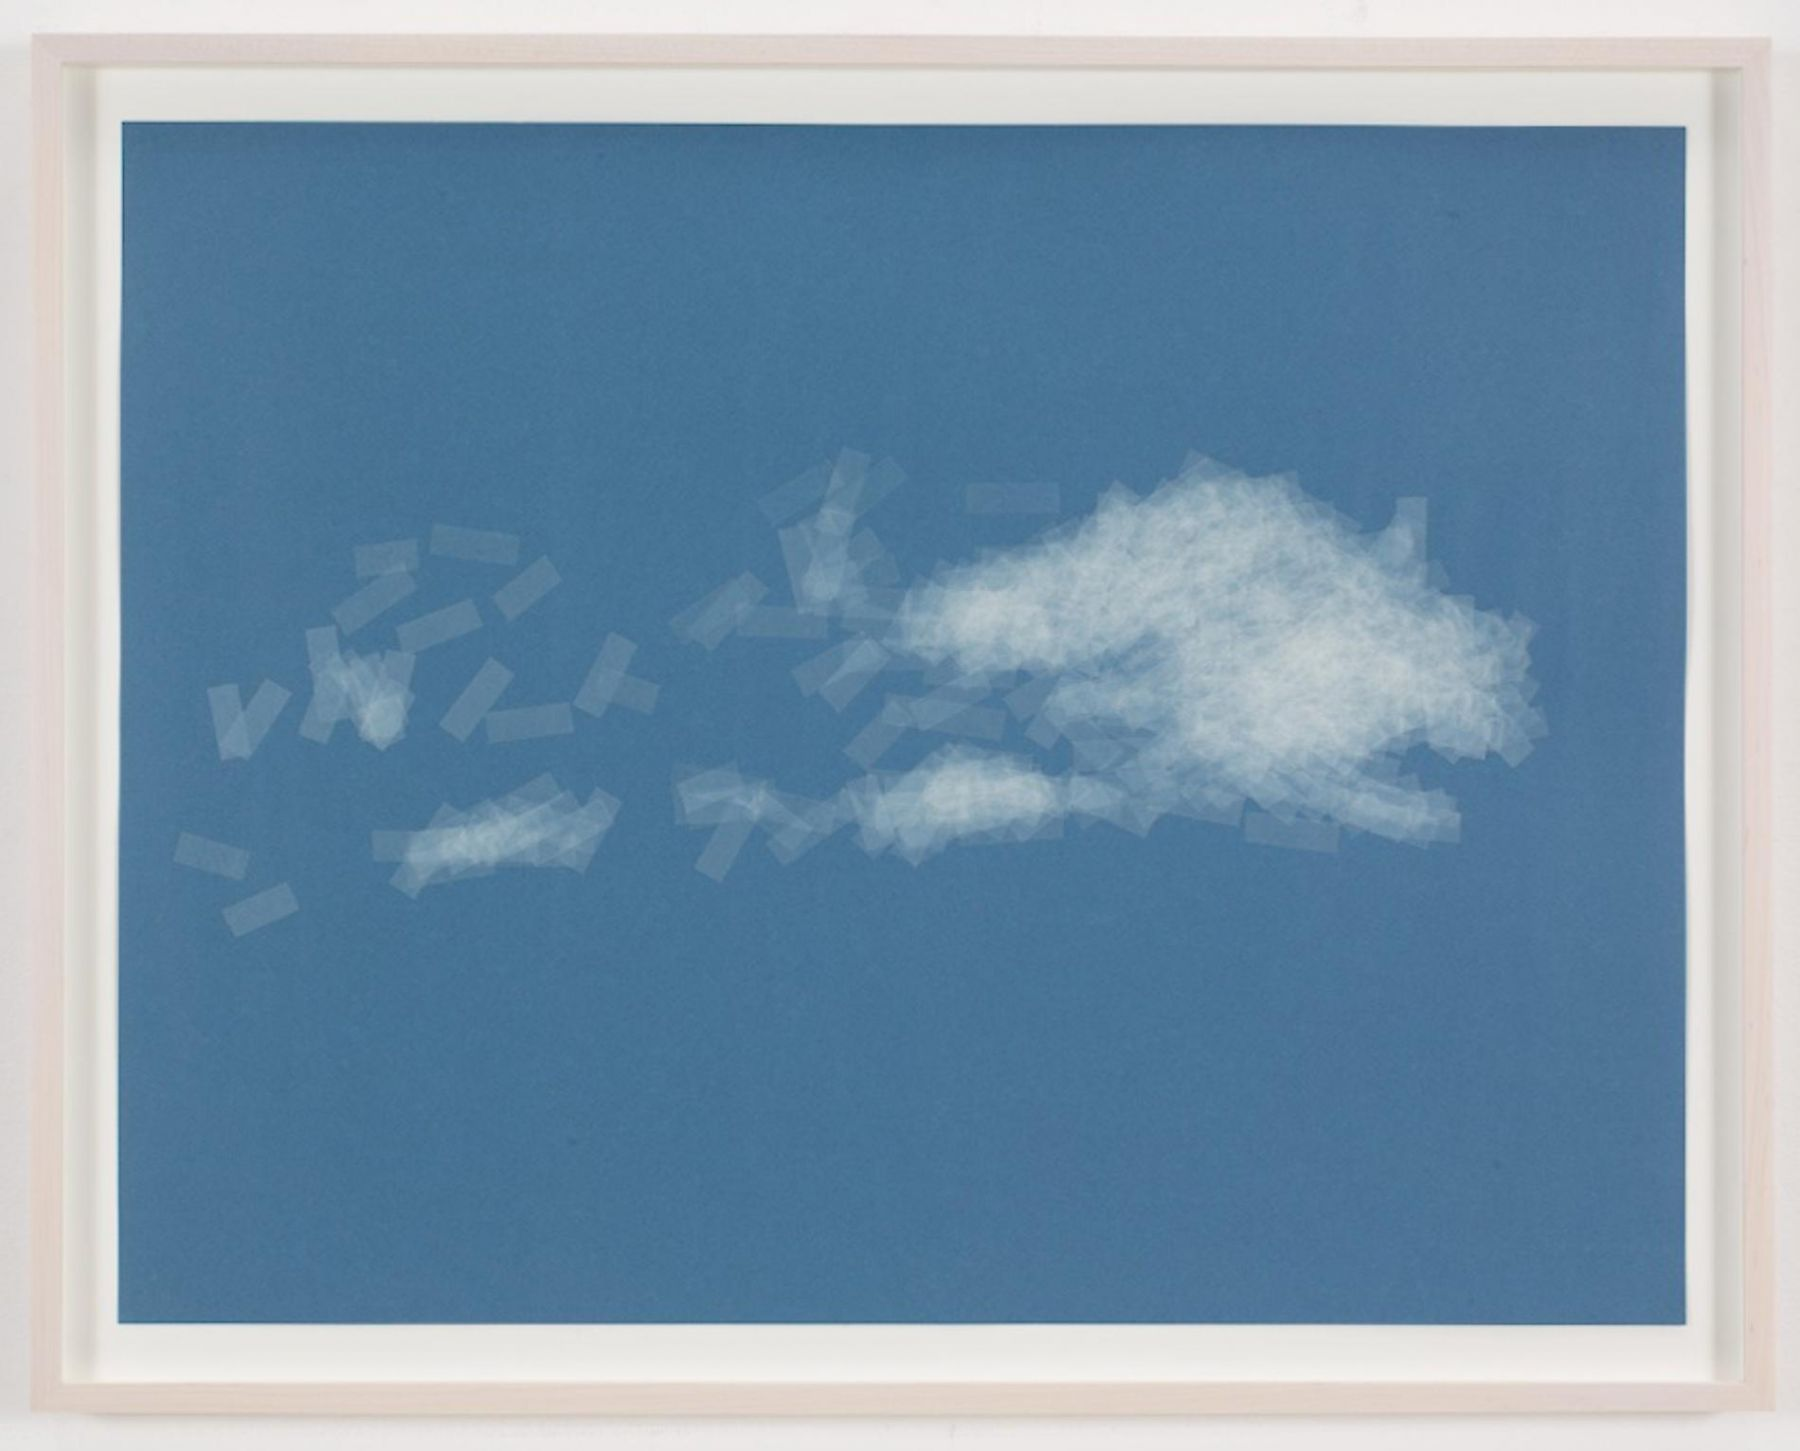 , SPENCER FINCH, Cloud (cumulus fractus, Finland), 2014, Scotch tape on paper, 19 3/4 x 25 1/2 in. (sheet) 21 5/8 x 27 1/2 in. (framed)